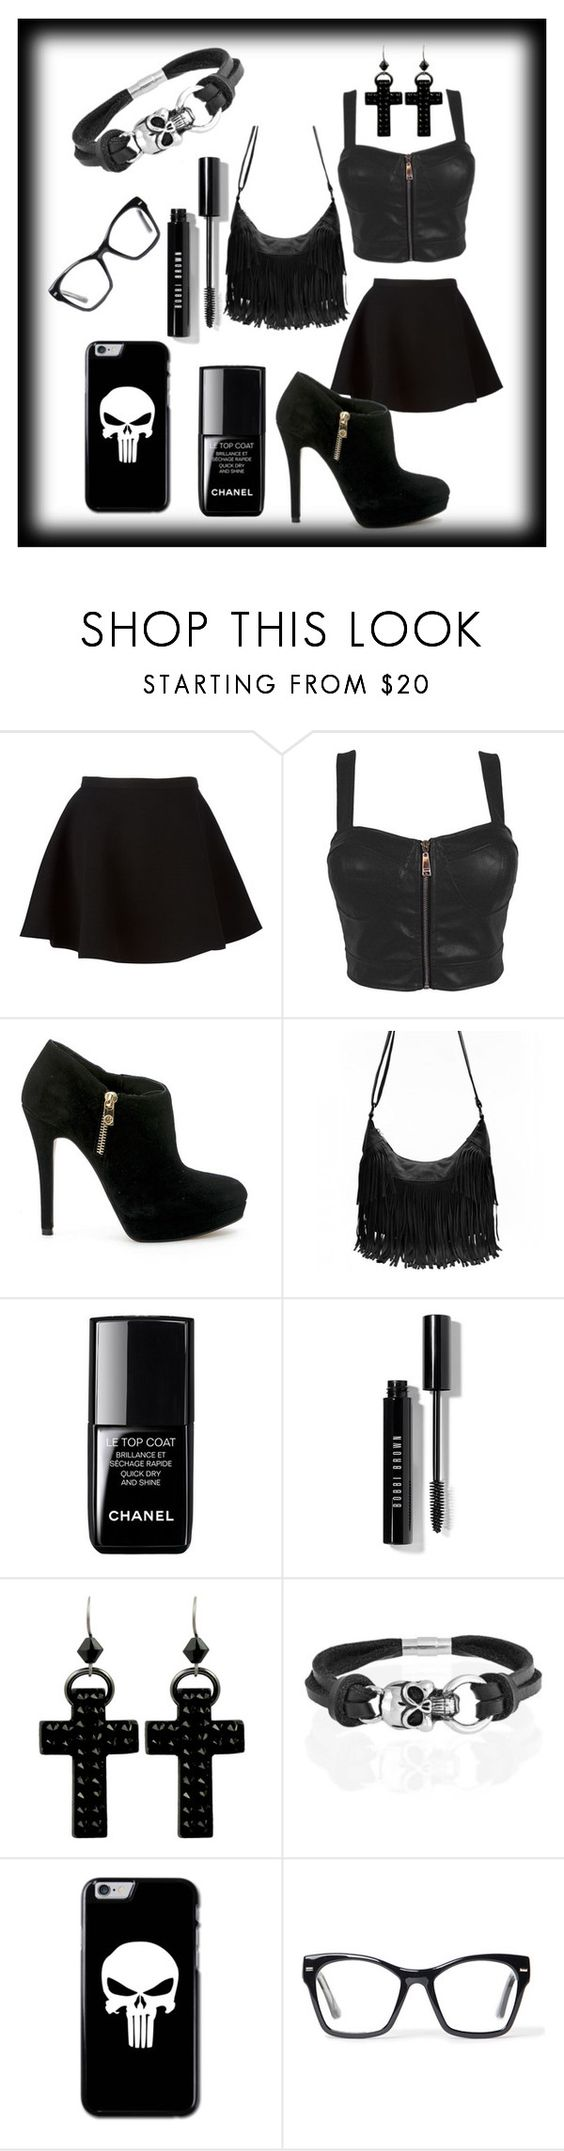 """Untitled #132"" by briggitaszabo ❤ liked on Polyvore featuring Neil Barrett, MICHAEL Michael Kors, le top, Bobbi Brown Cosmetics, Tarina Tarantino, Bling Jewelry and Spitfire"